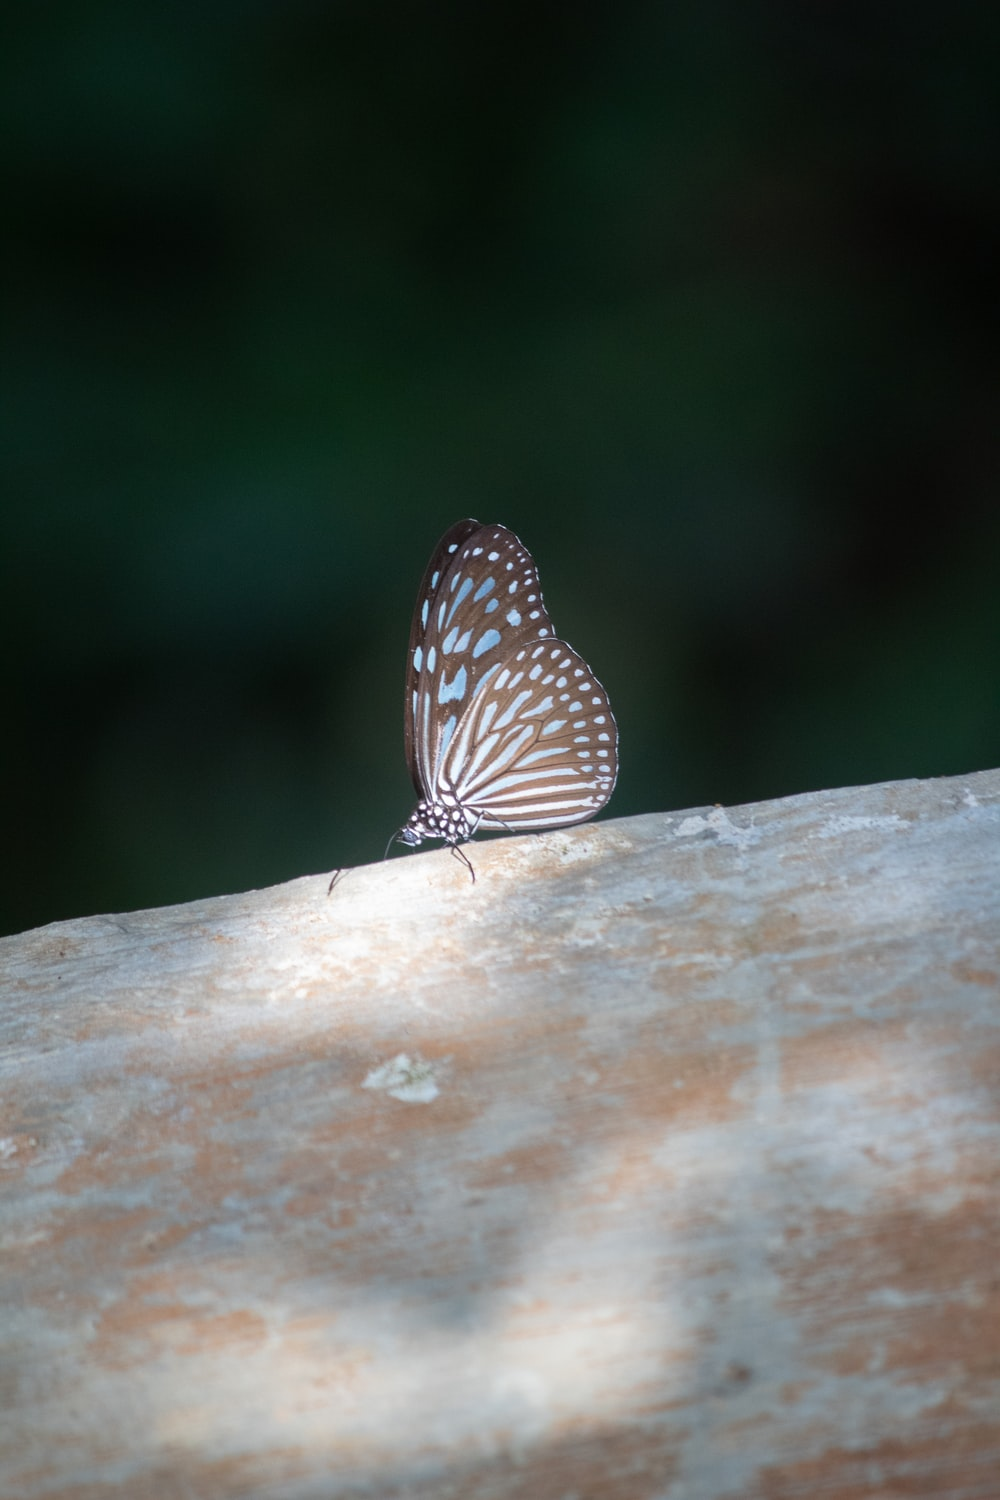 brown and white butterfly on brown wooden surface